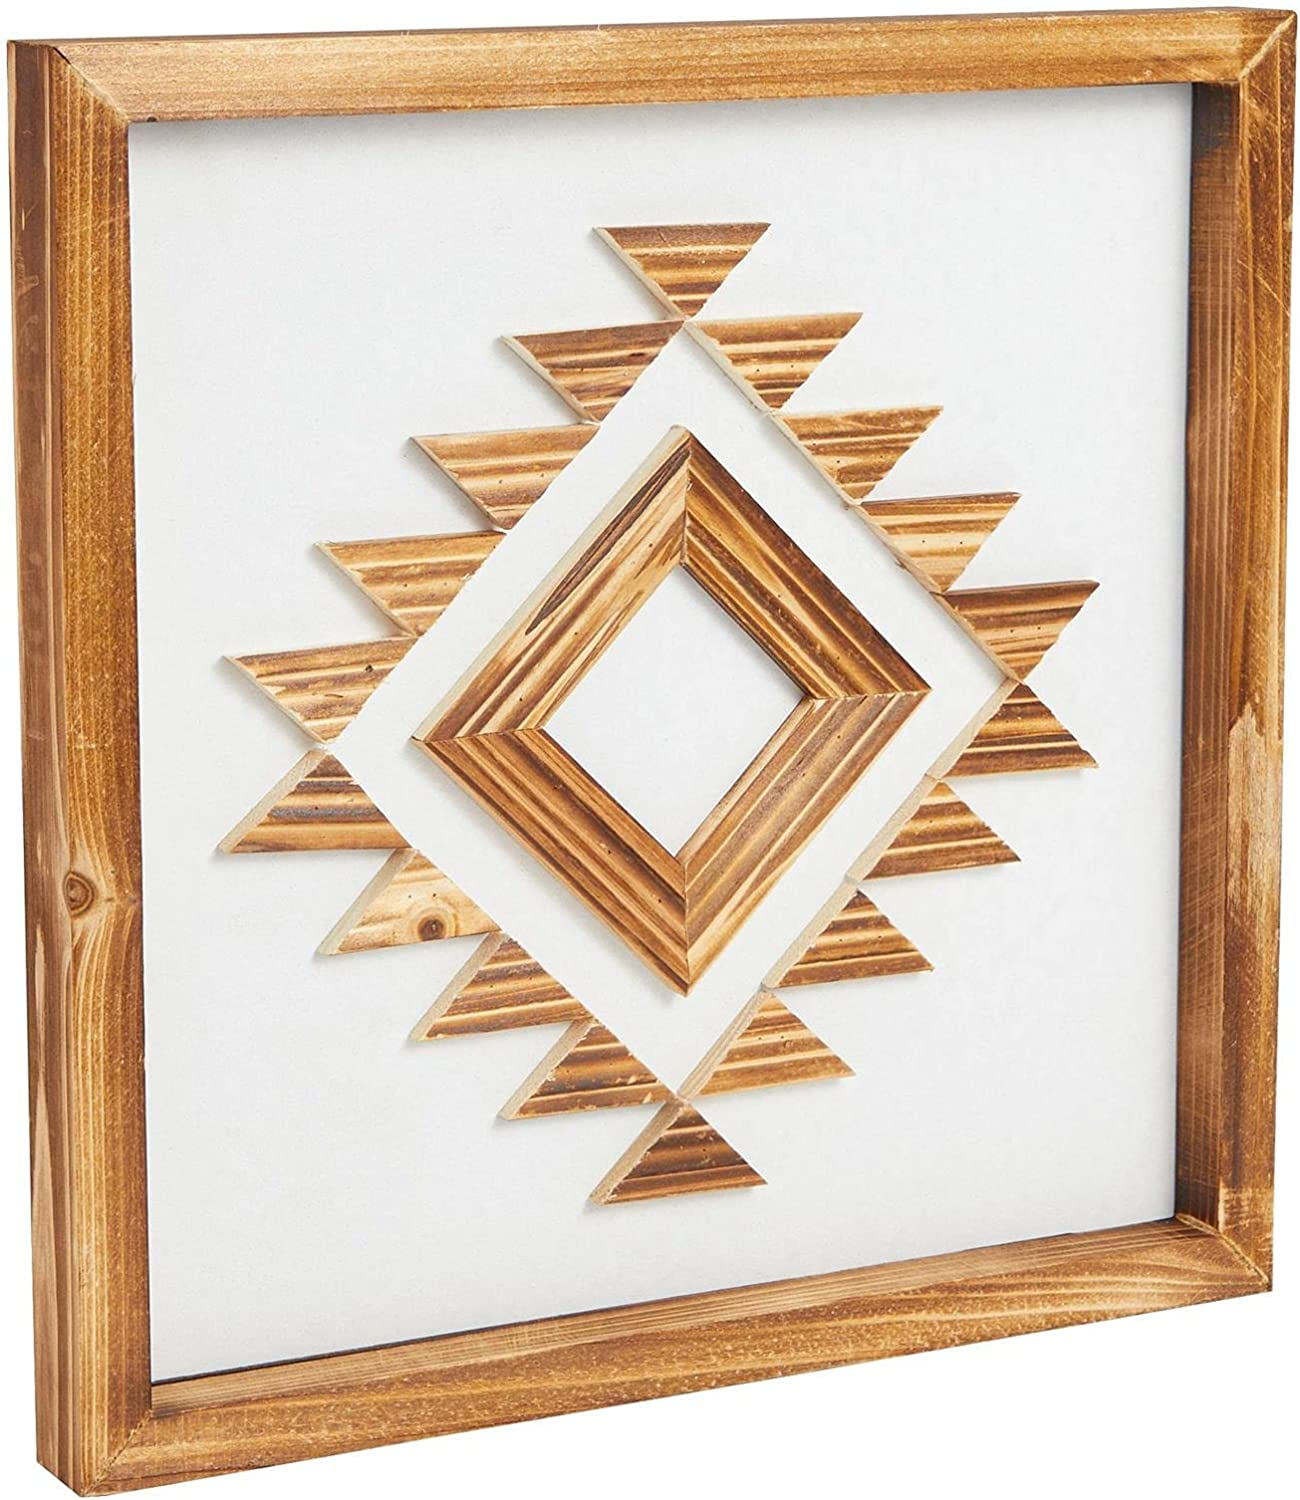 Wooden Southwest Geometric Wall Decor (13 x 13 Inches)